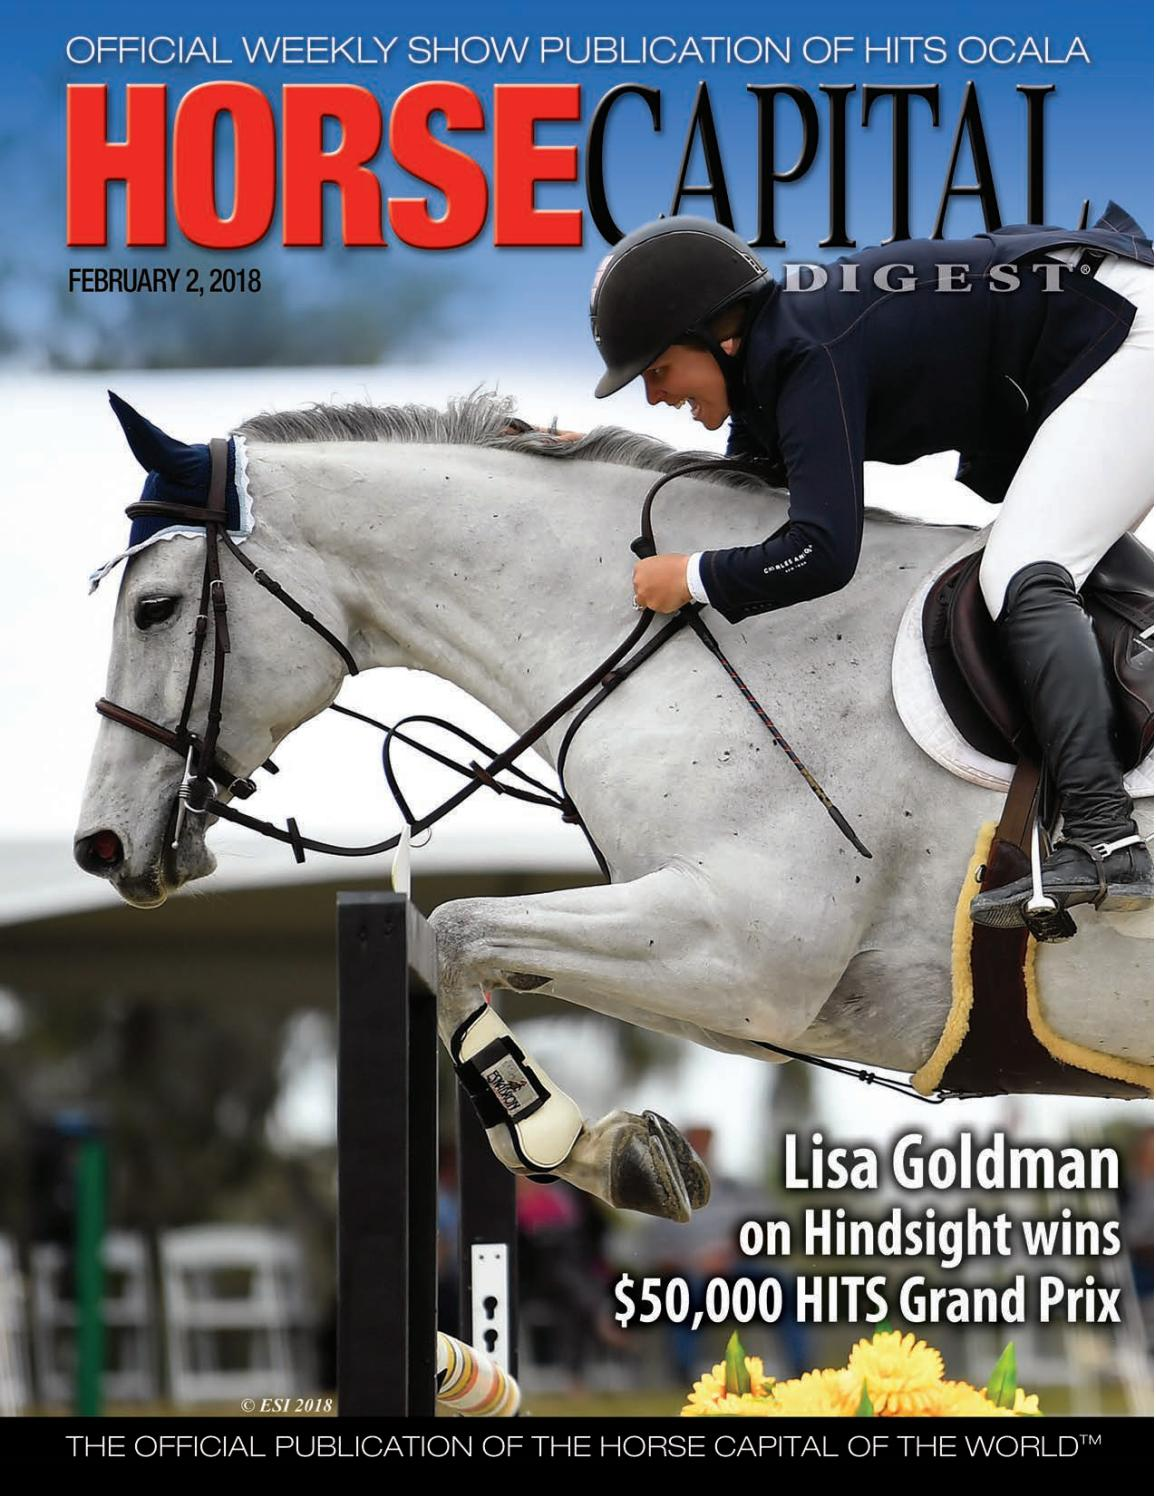 Hcd february 2 by Florida Equine Publications - issuu